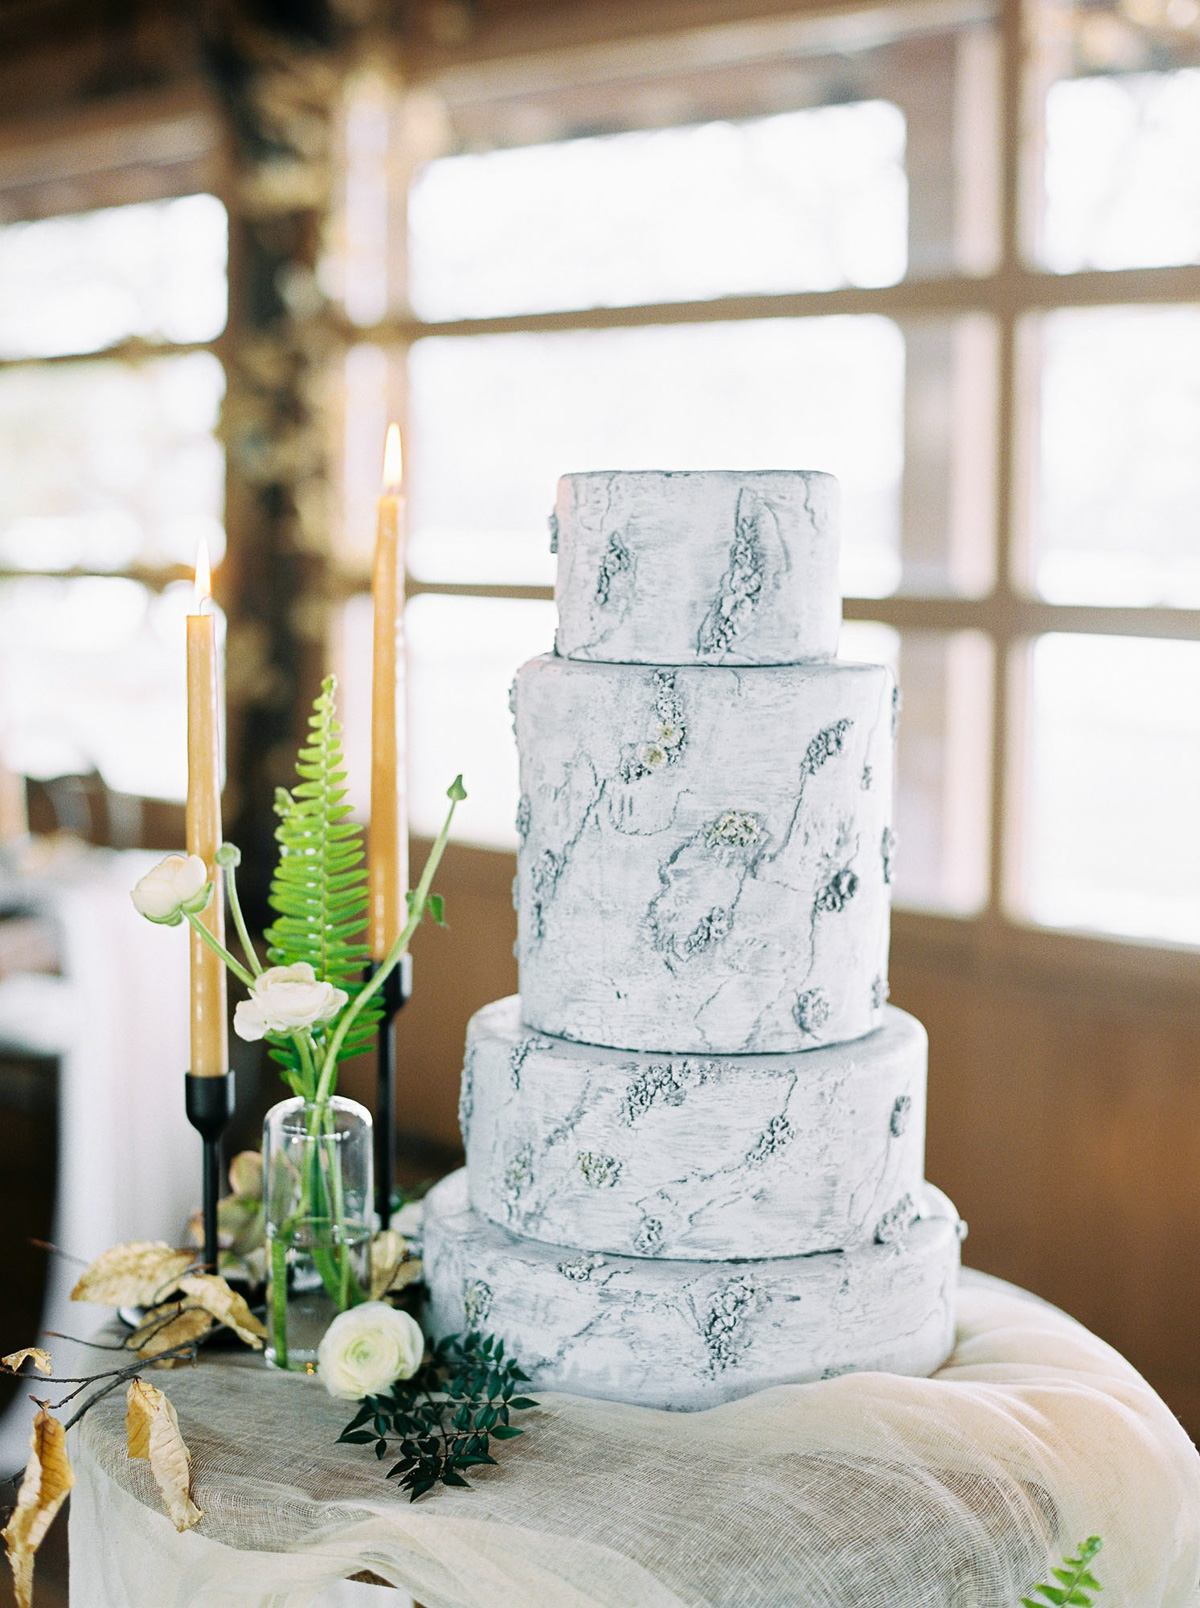 will-reid-photo-vineyard-bride-swish-list-kurtz-orchards-market-niagara-on-the-lake-wedding-editorial-33.jpg